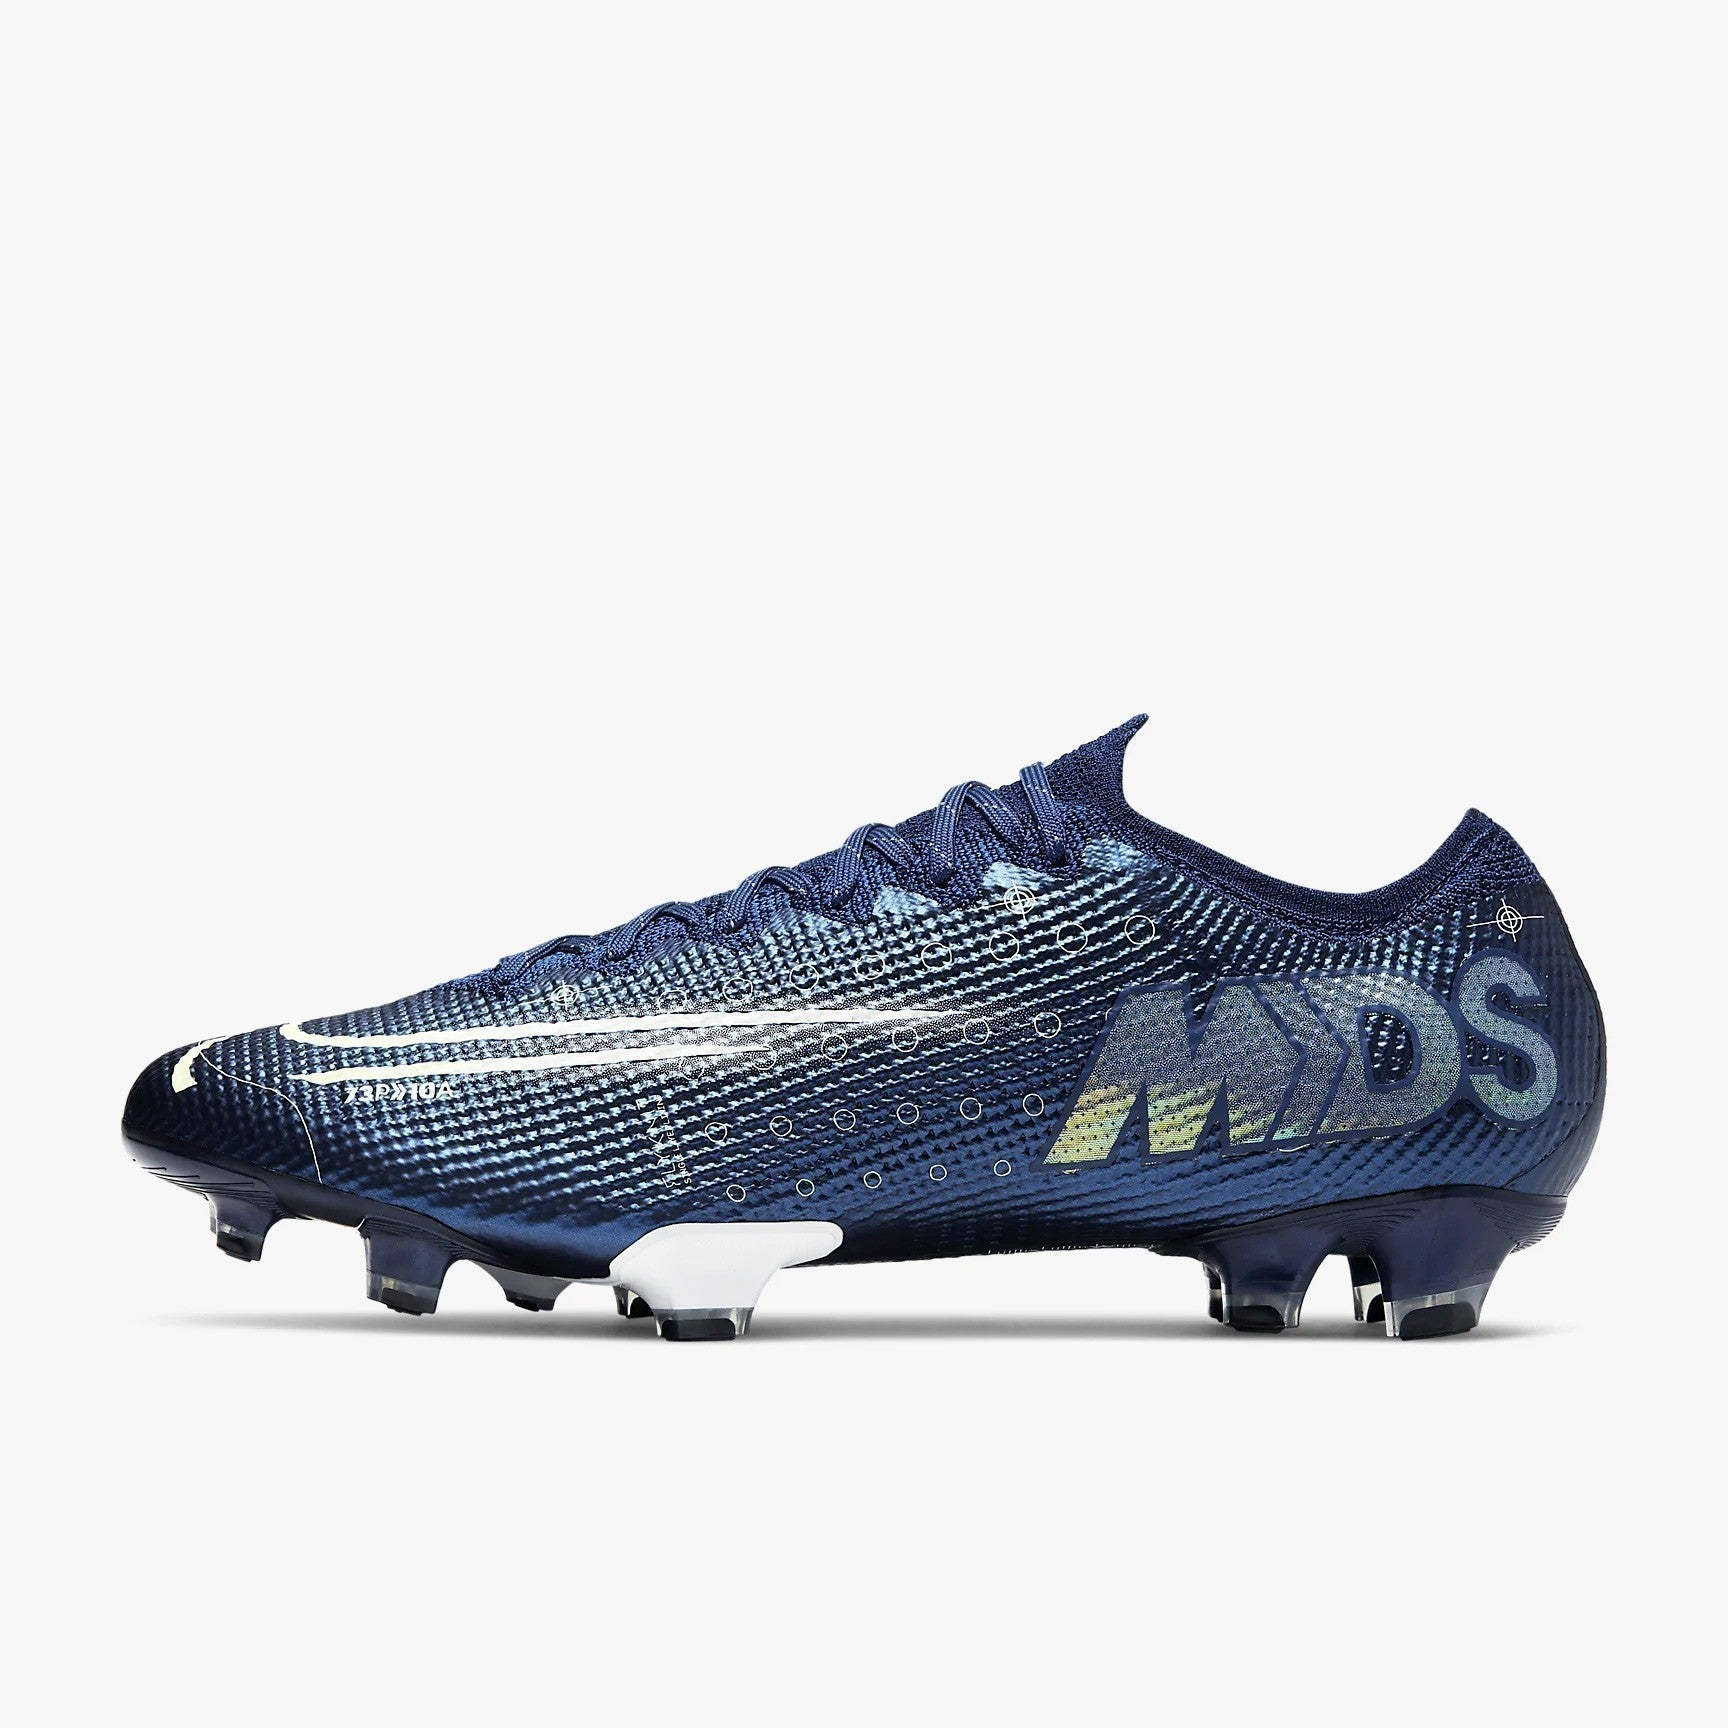 Mercurial Vapor 13 Elite MDS FG Men's Navy